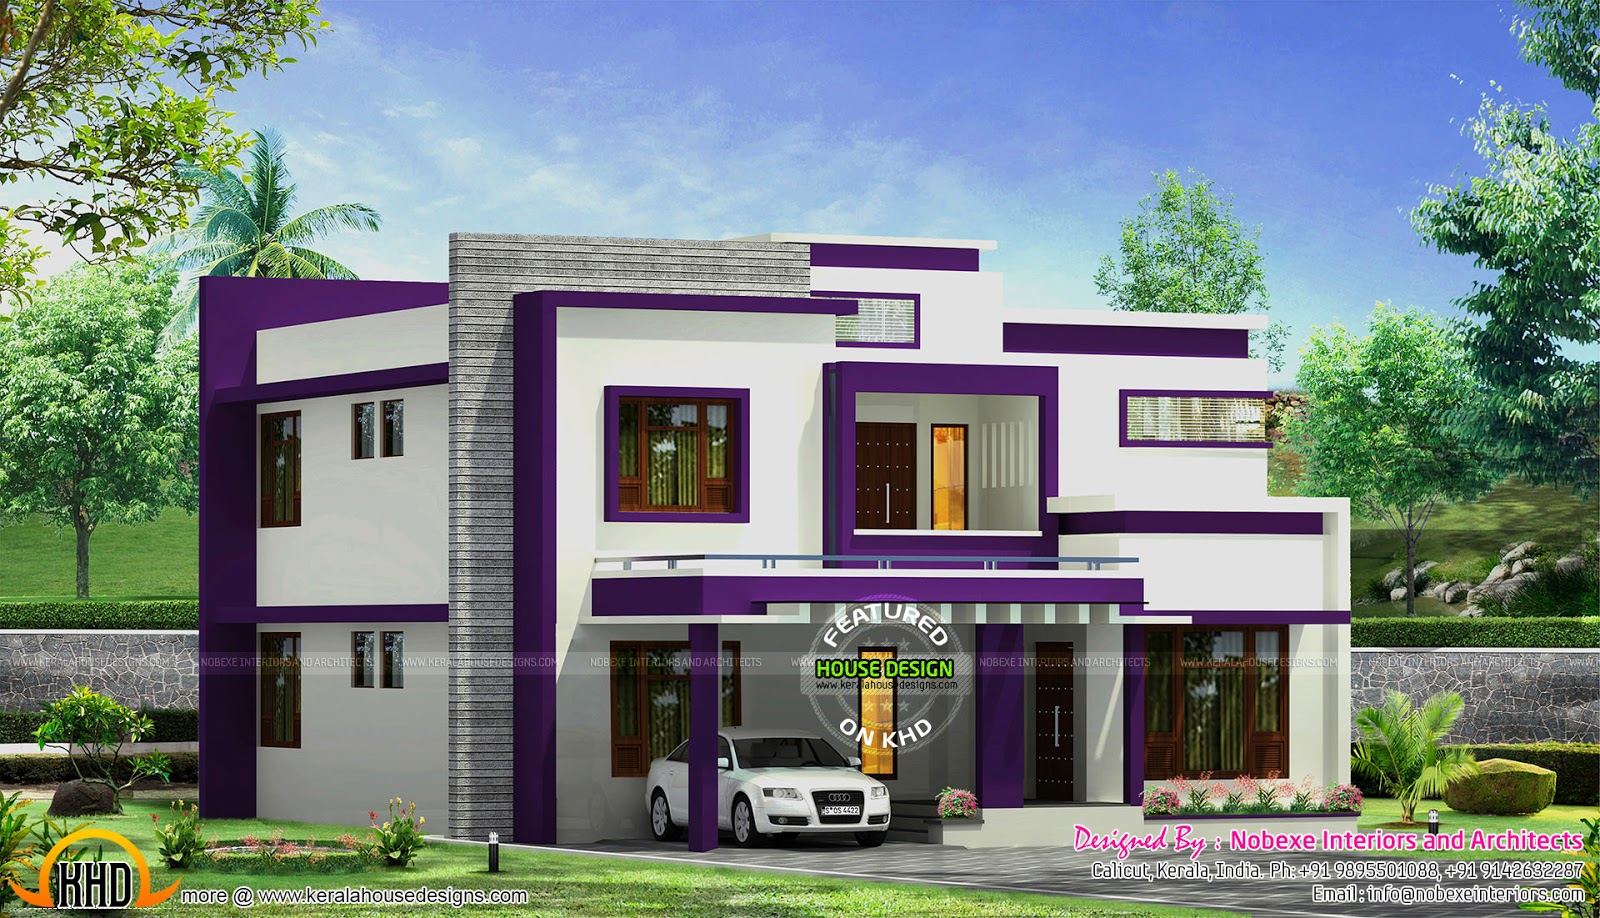 Contemporary home design by nobexe interiors kerala home for Home designs 4 you